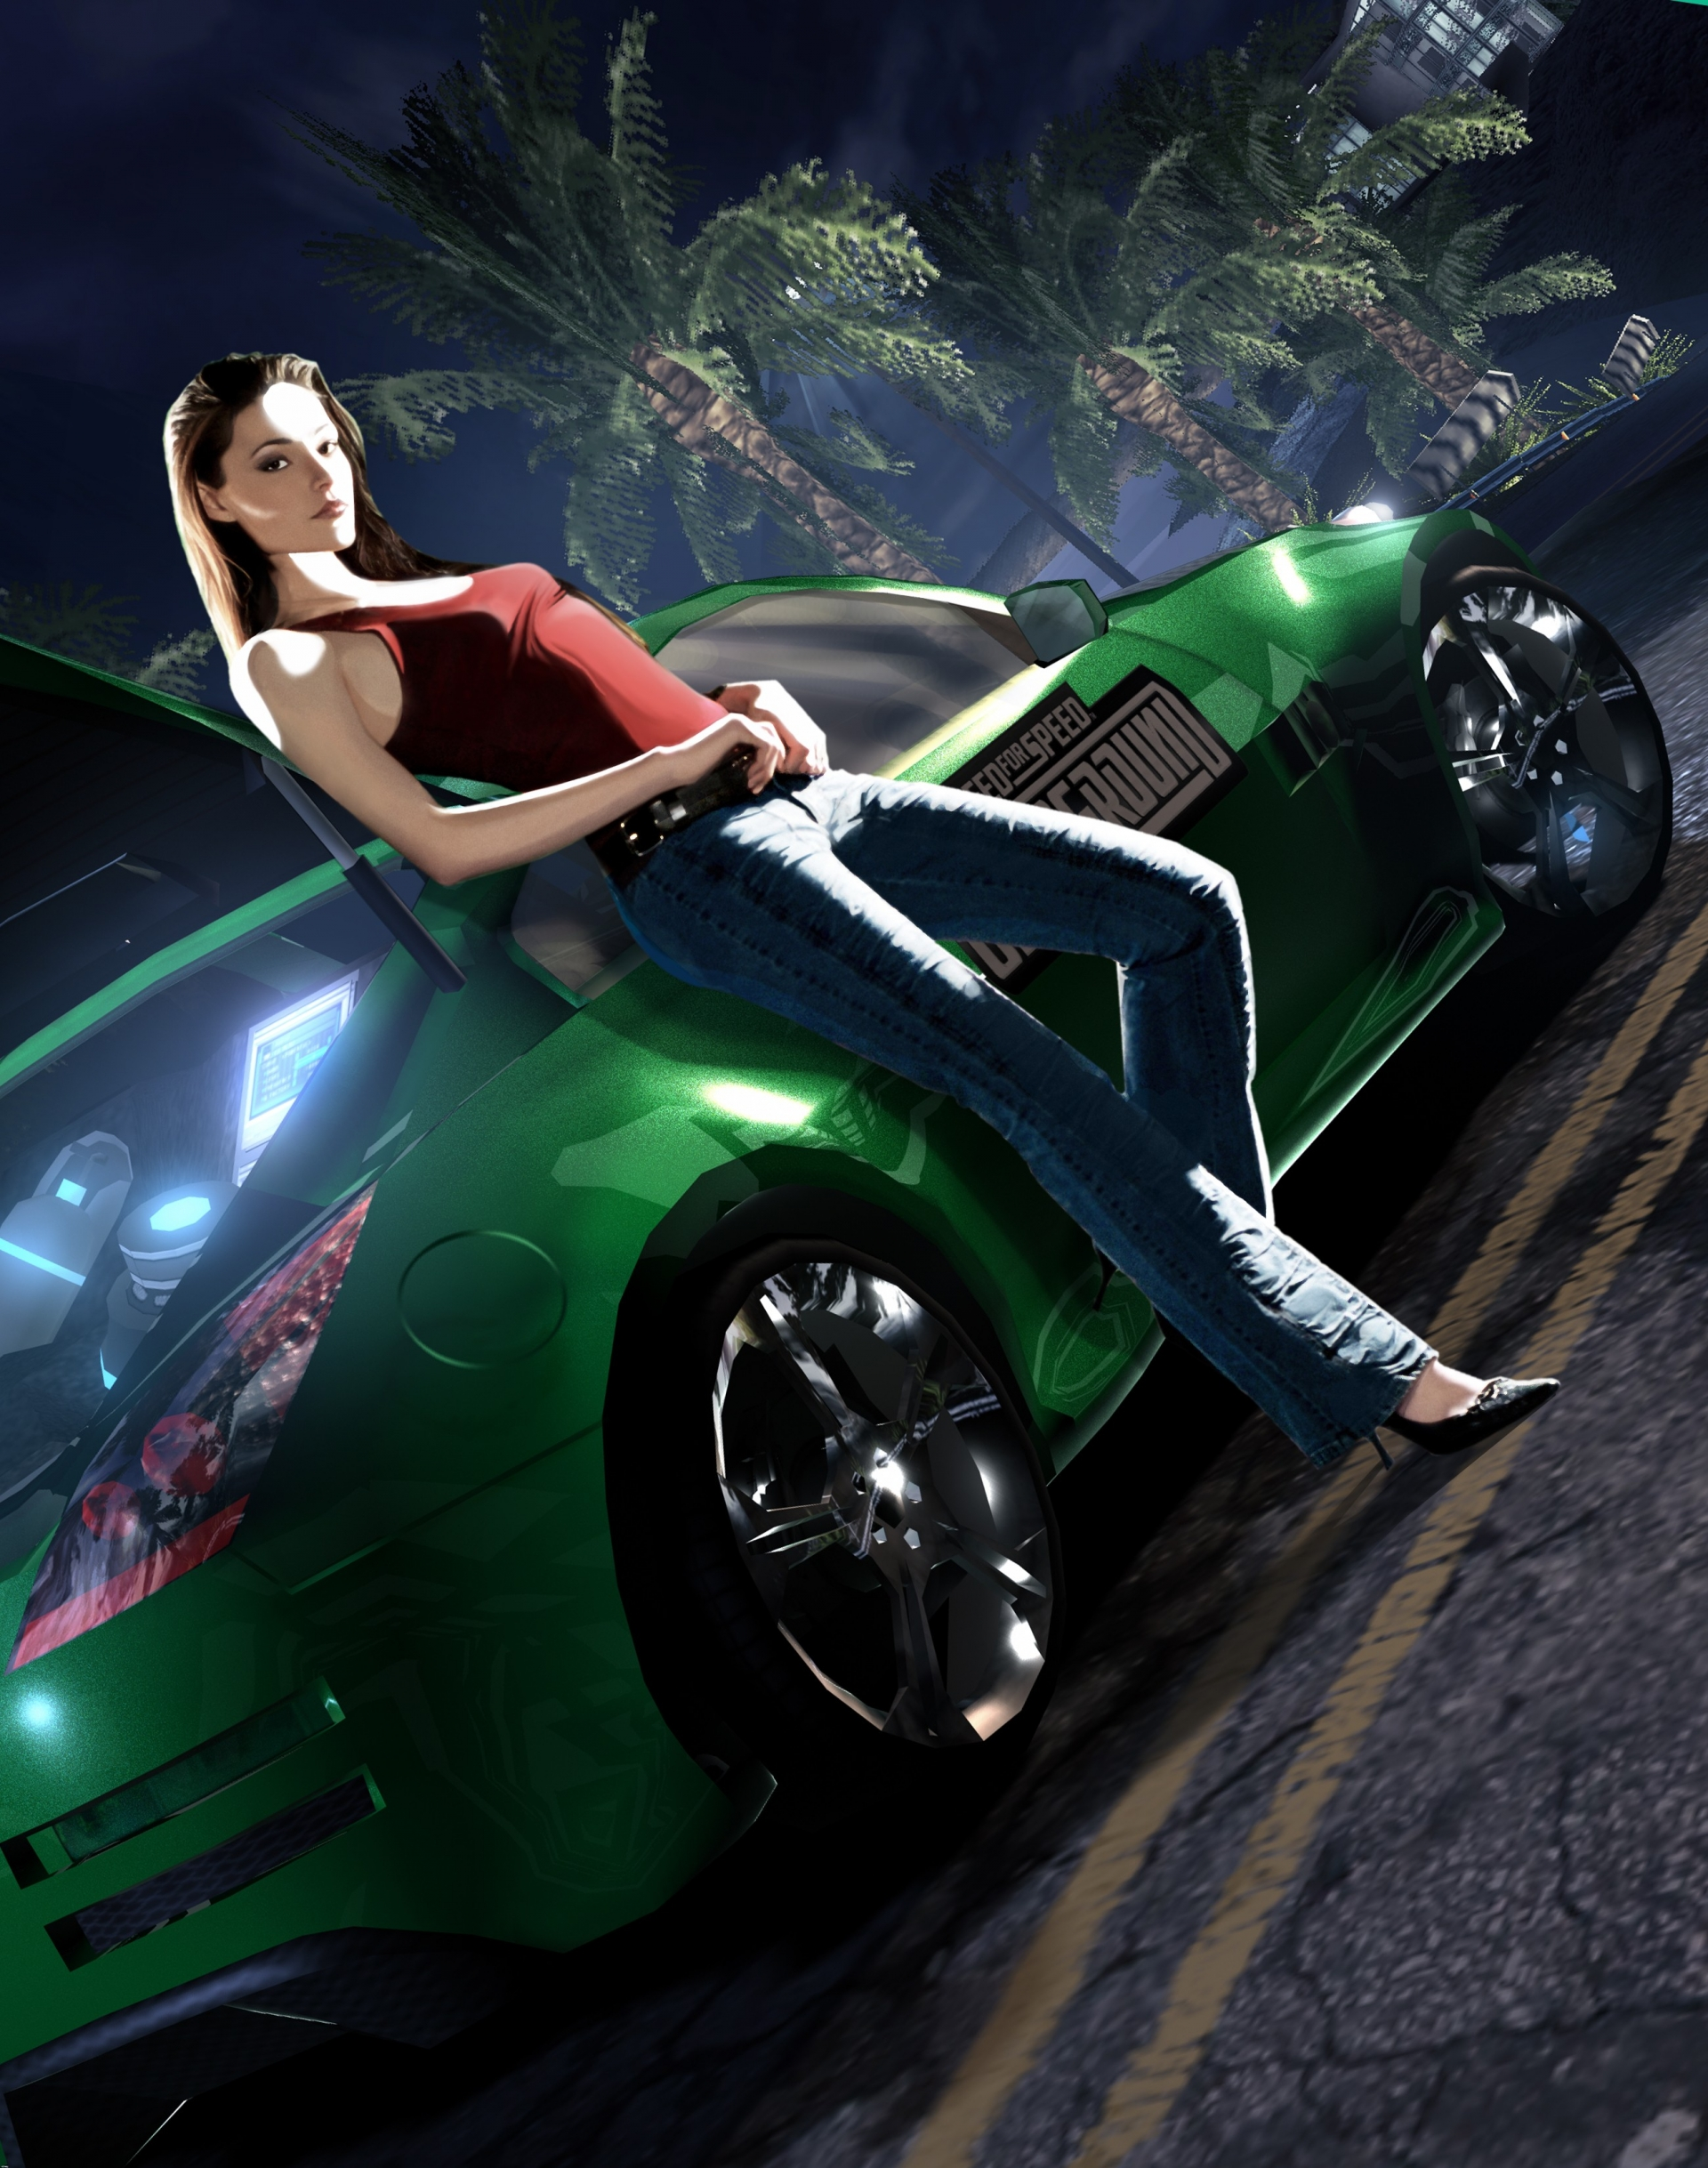 Арт к игре Need For Speed: Underground 2